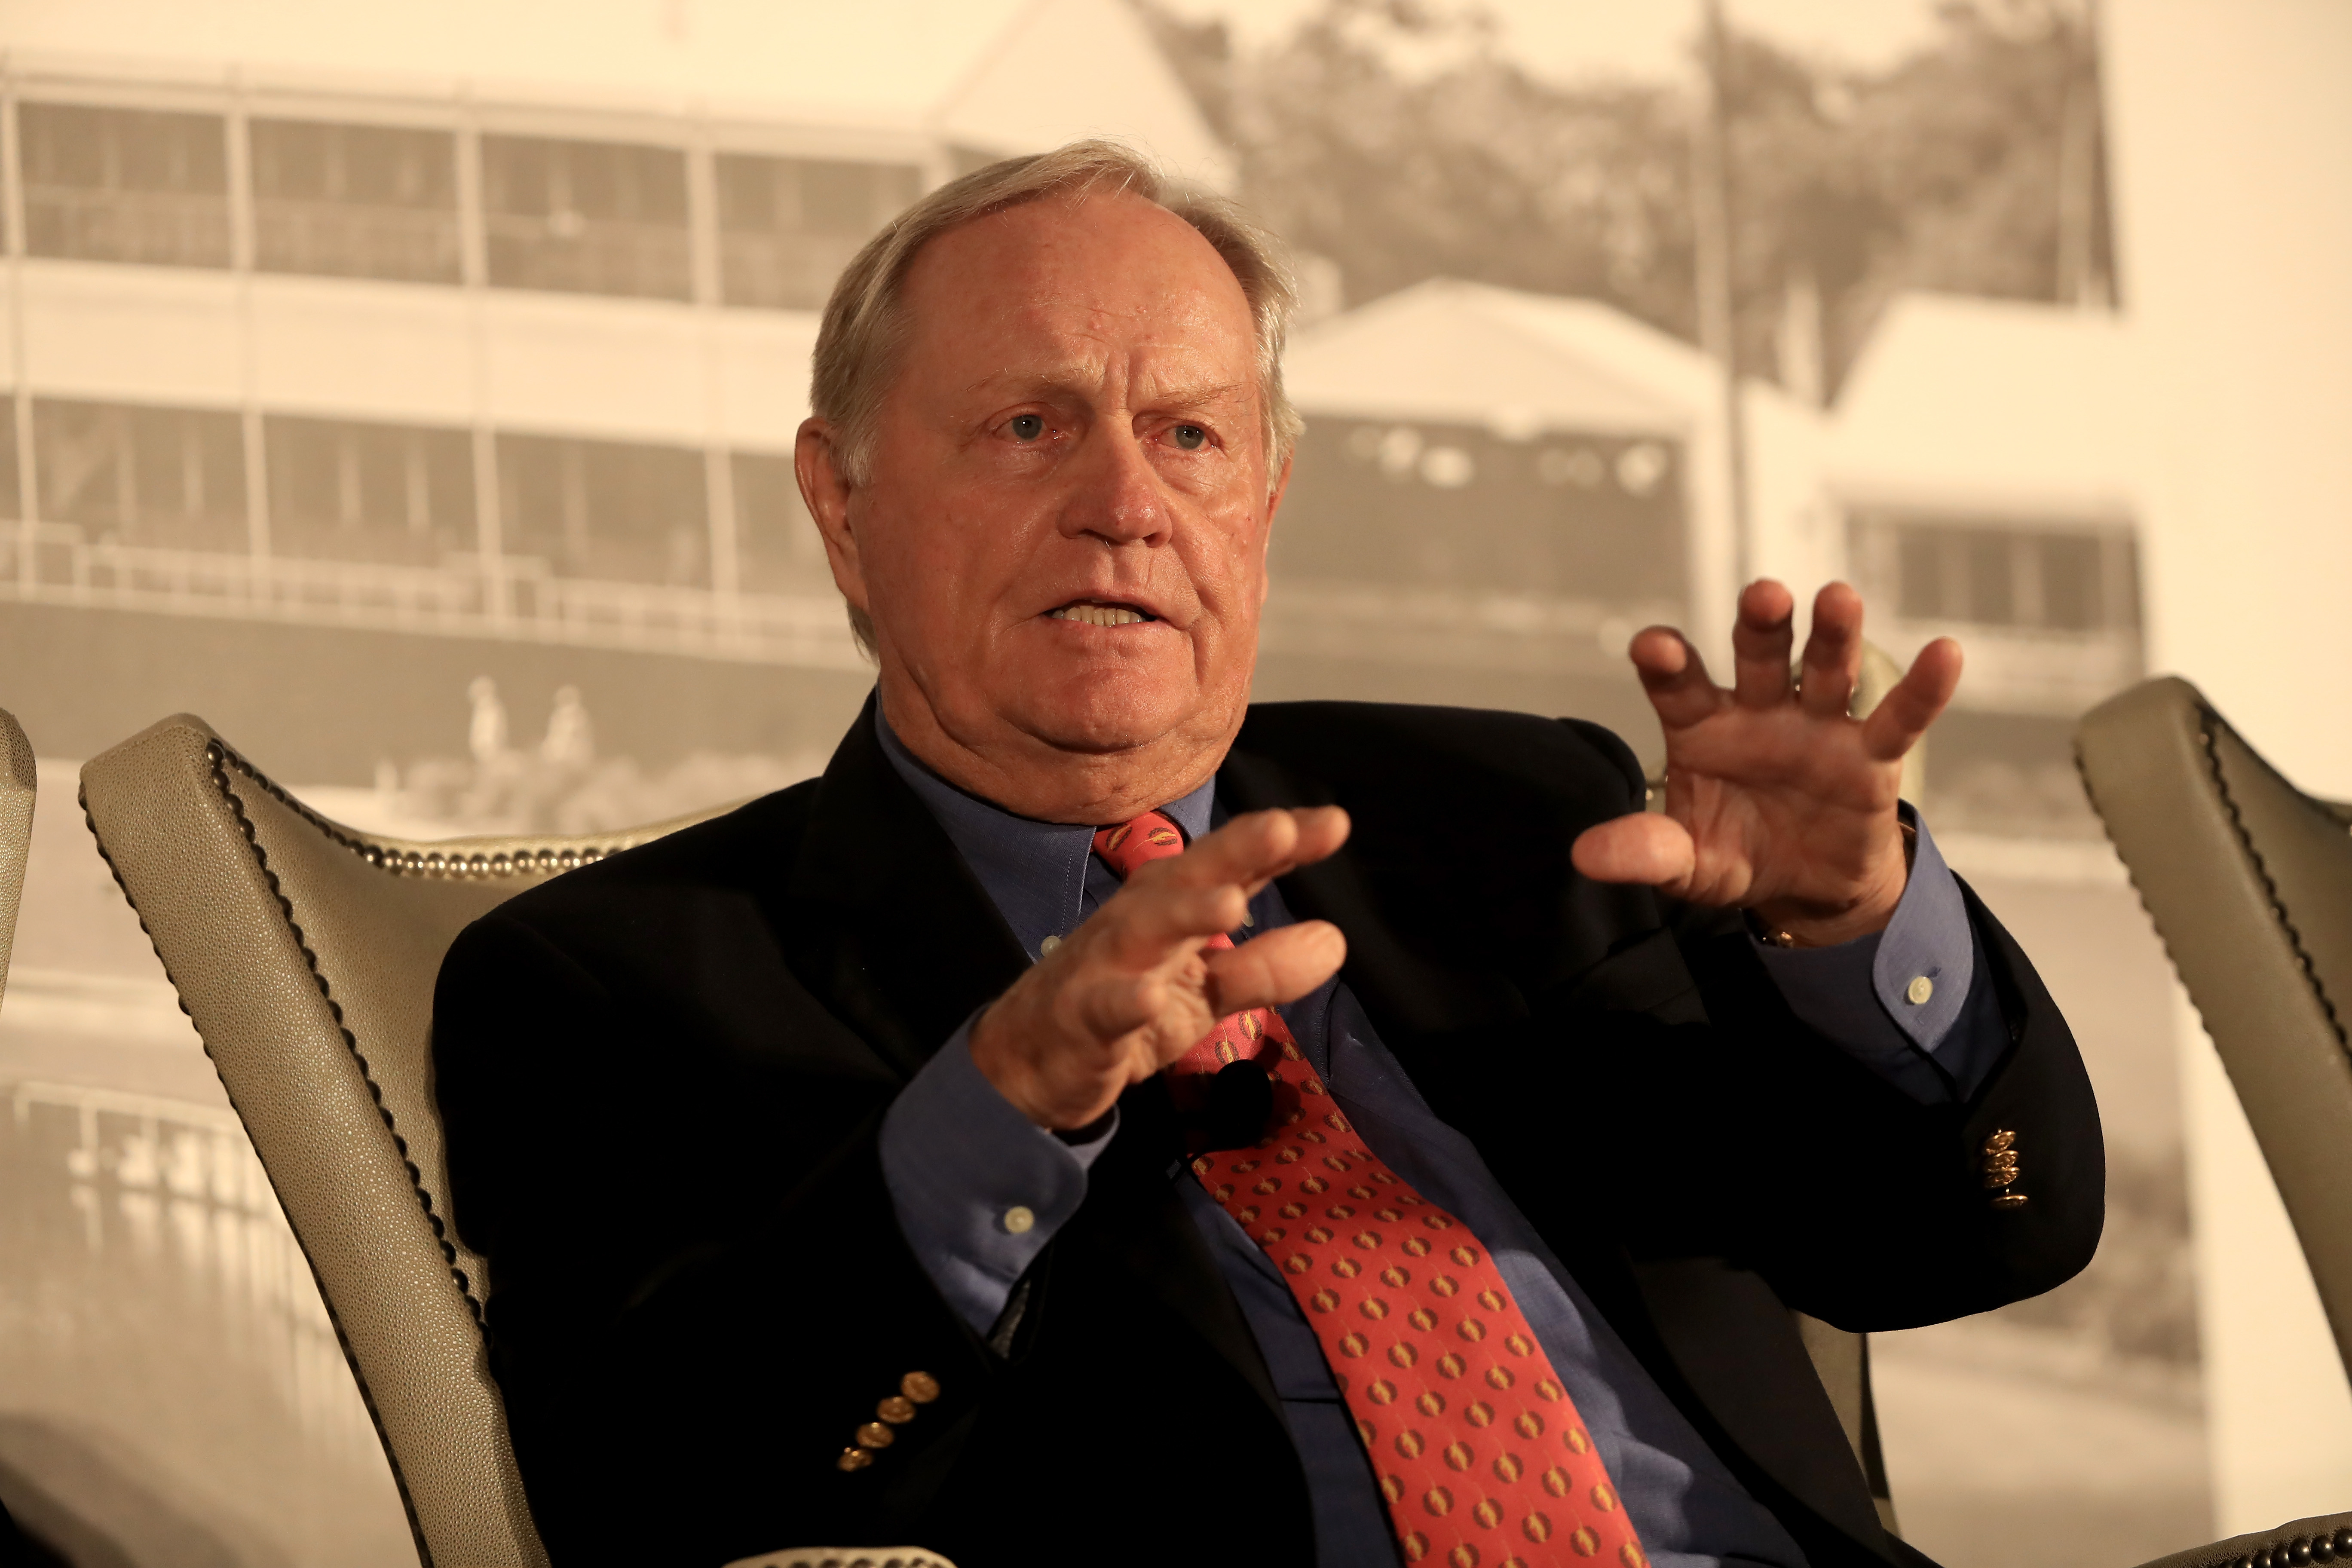 Jack Nicklaus's design company has 410 golf courses open for play around the world.